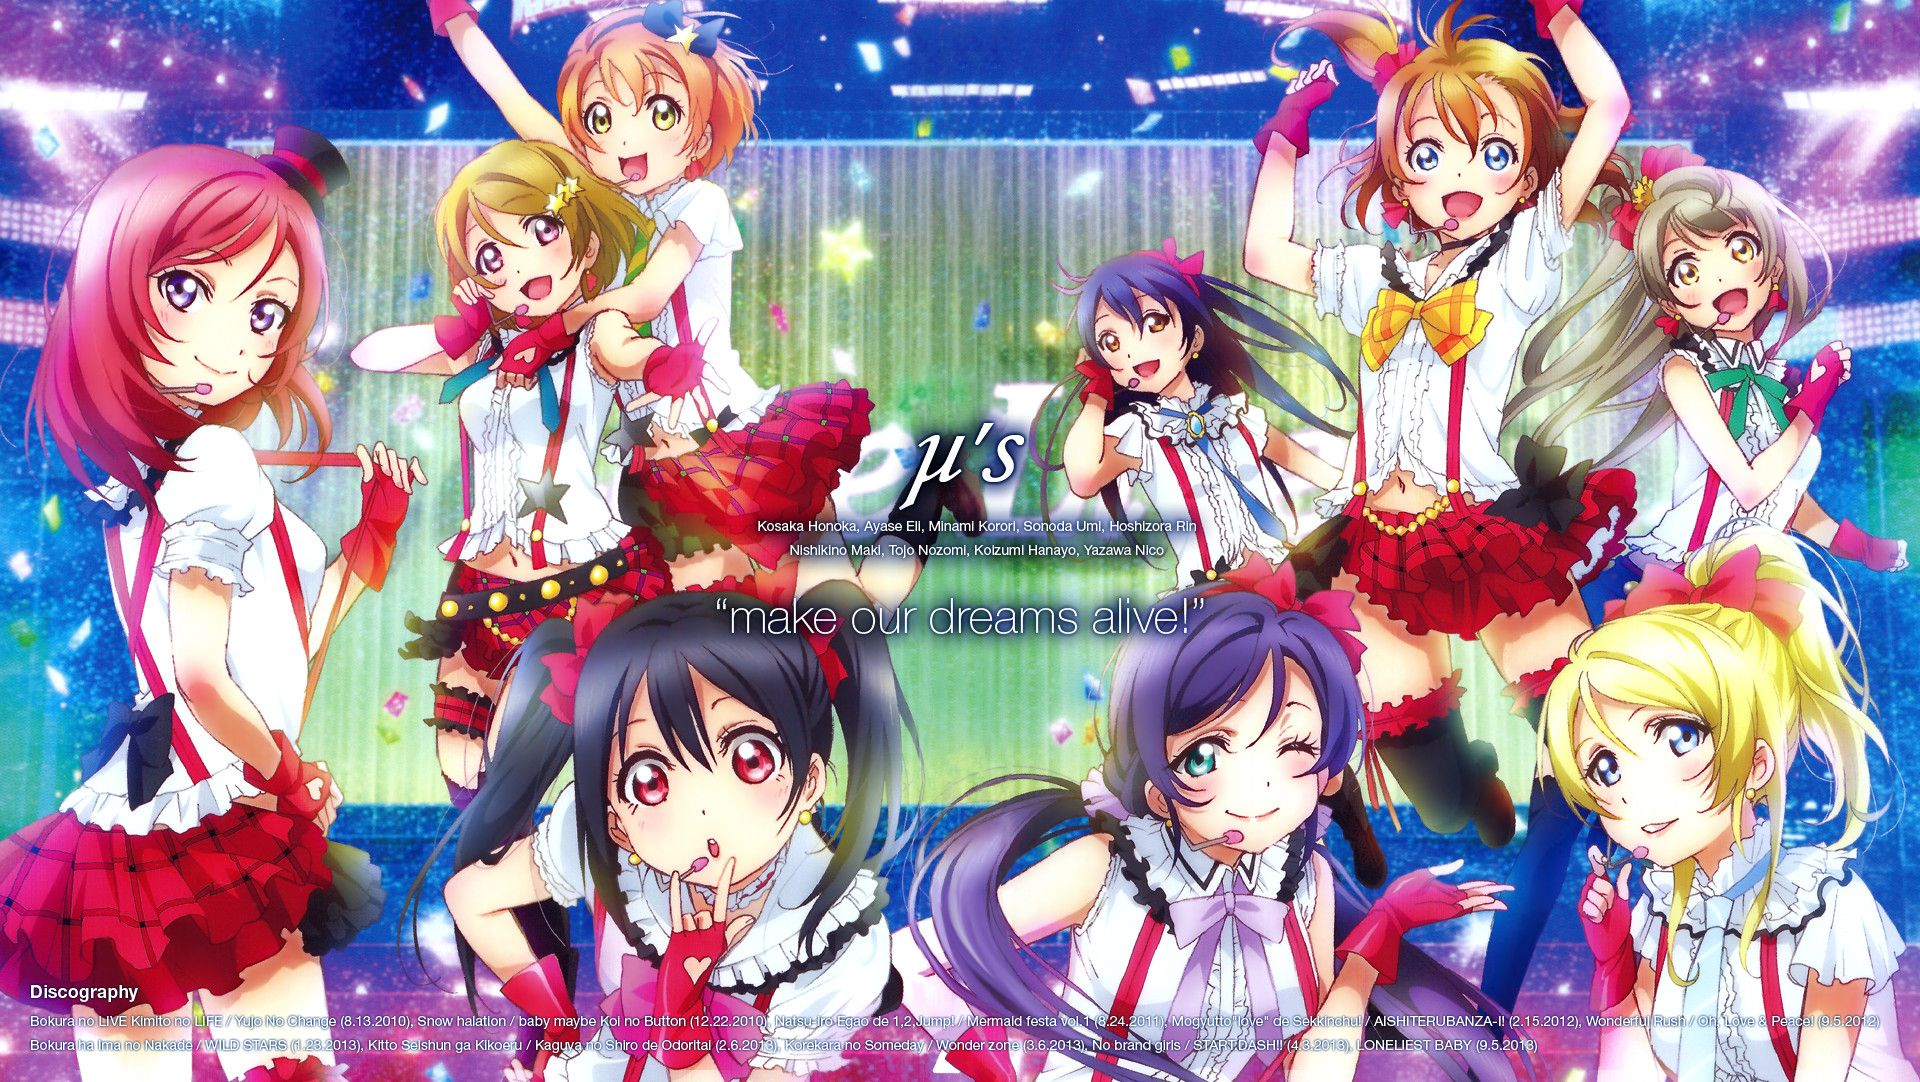 1000+ images about ラブライブ on Pinterest